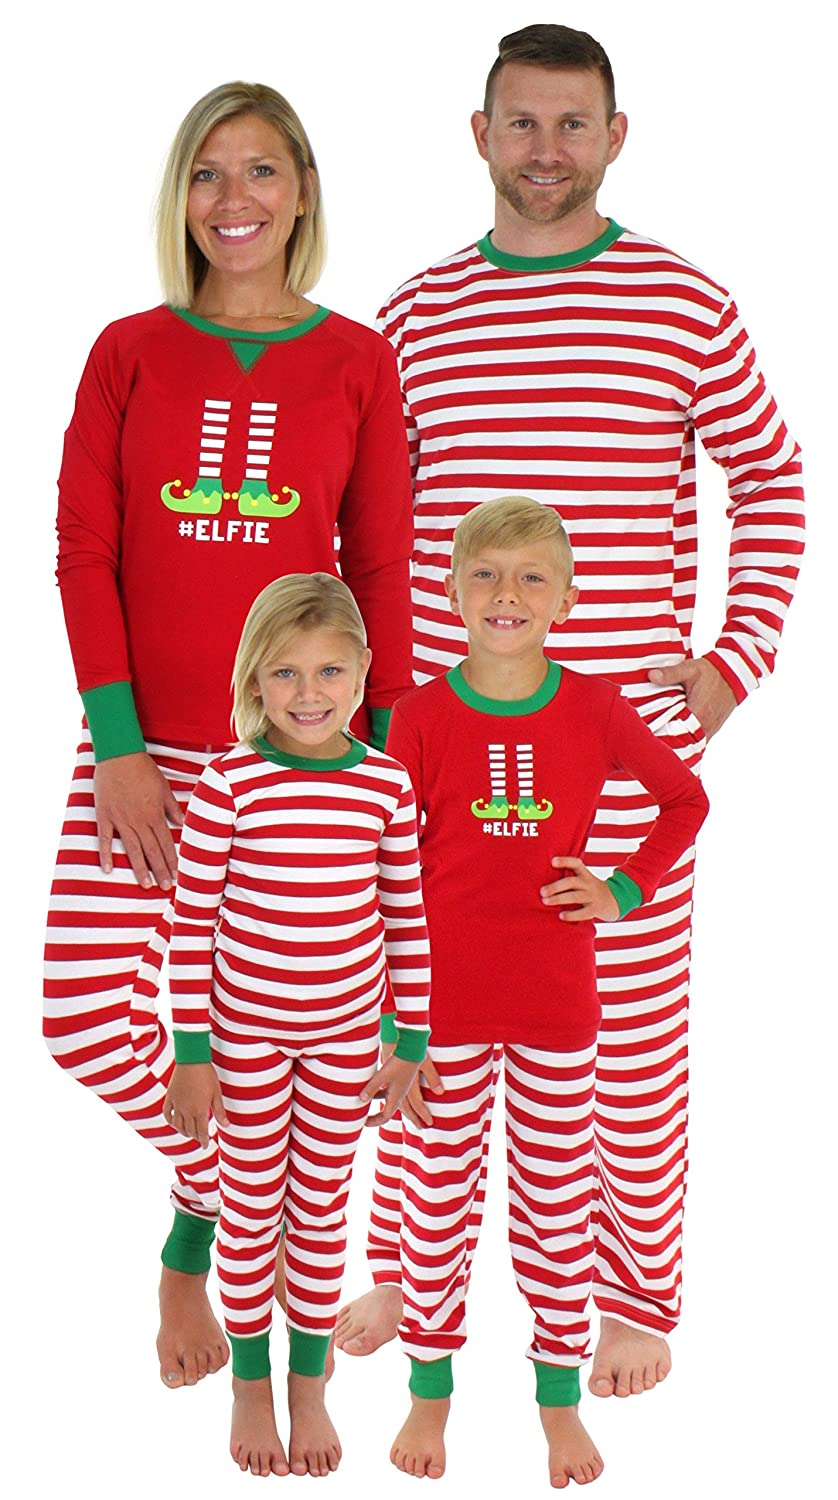 Sleepyheads Christmas Family Matching Red Striped Elf Pyjama PJ Sets